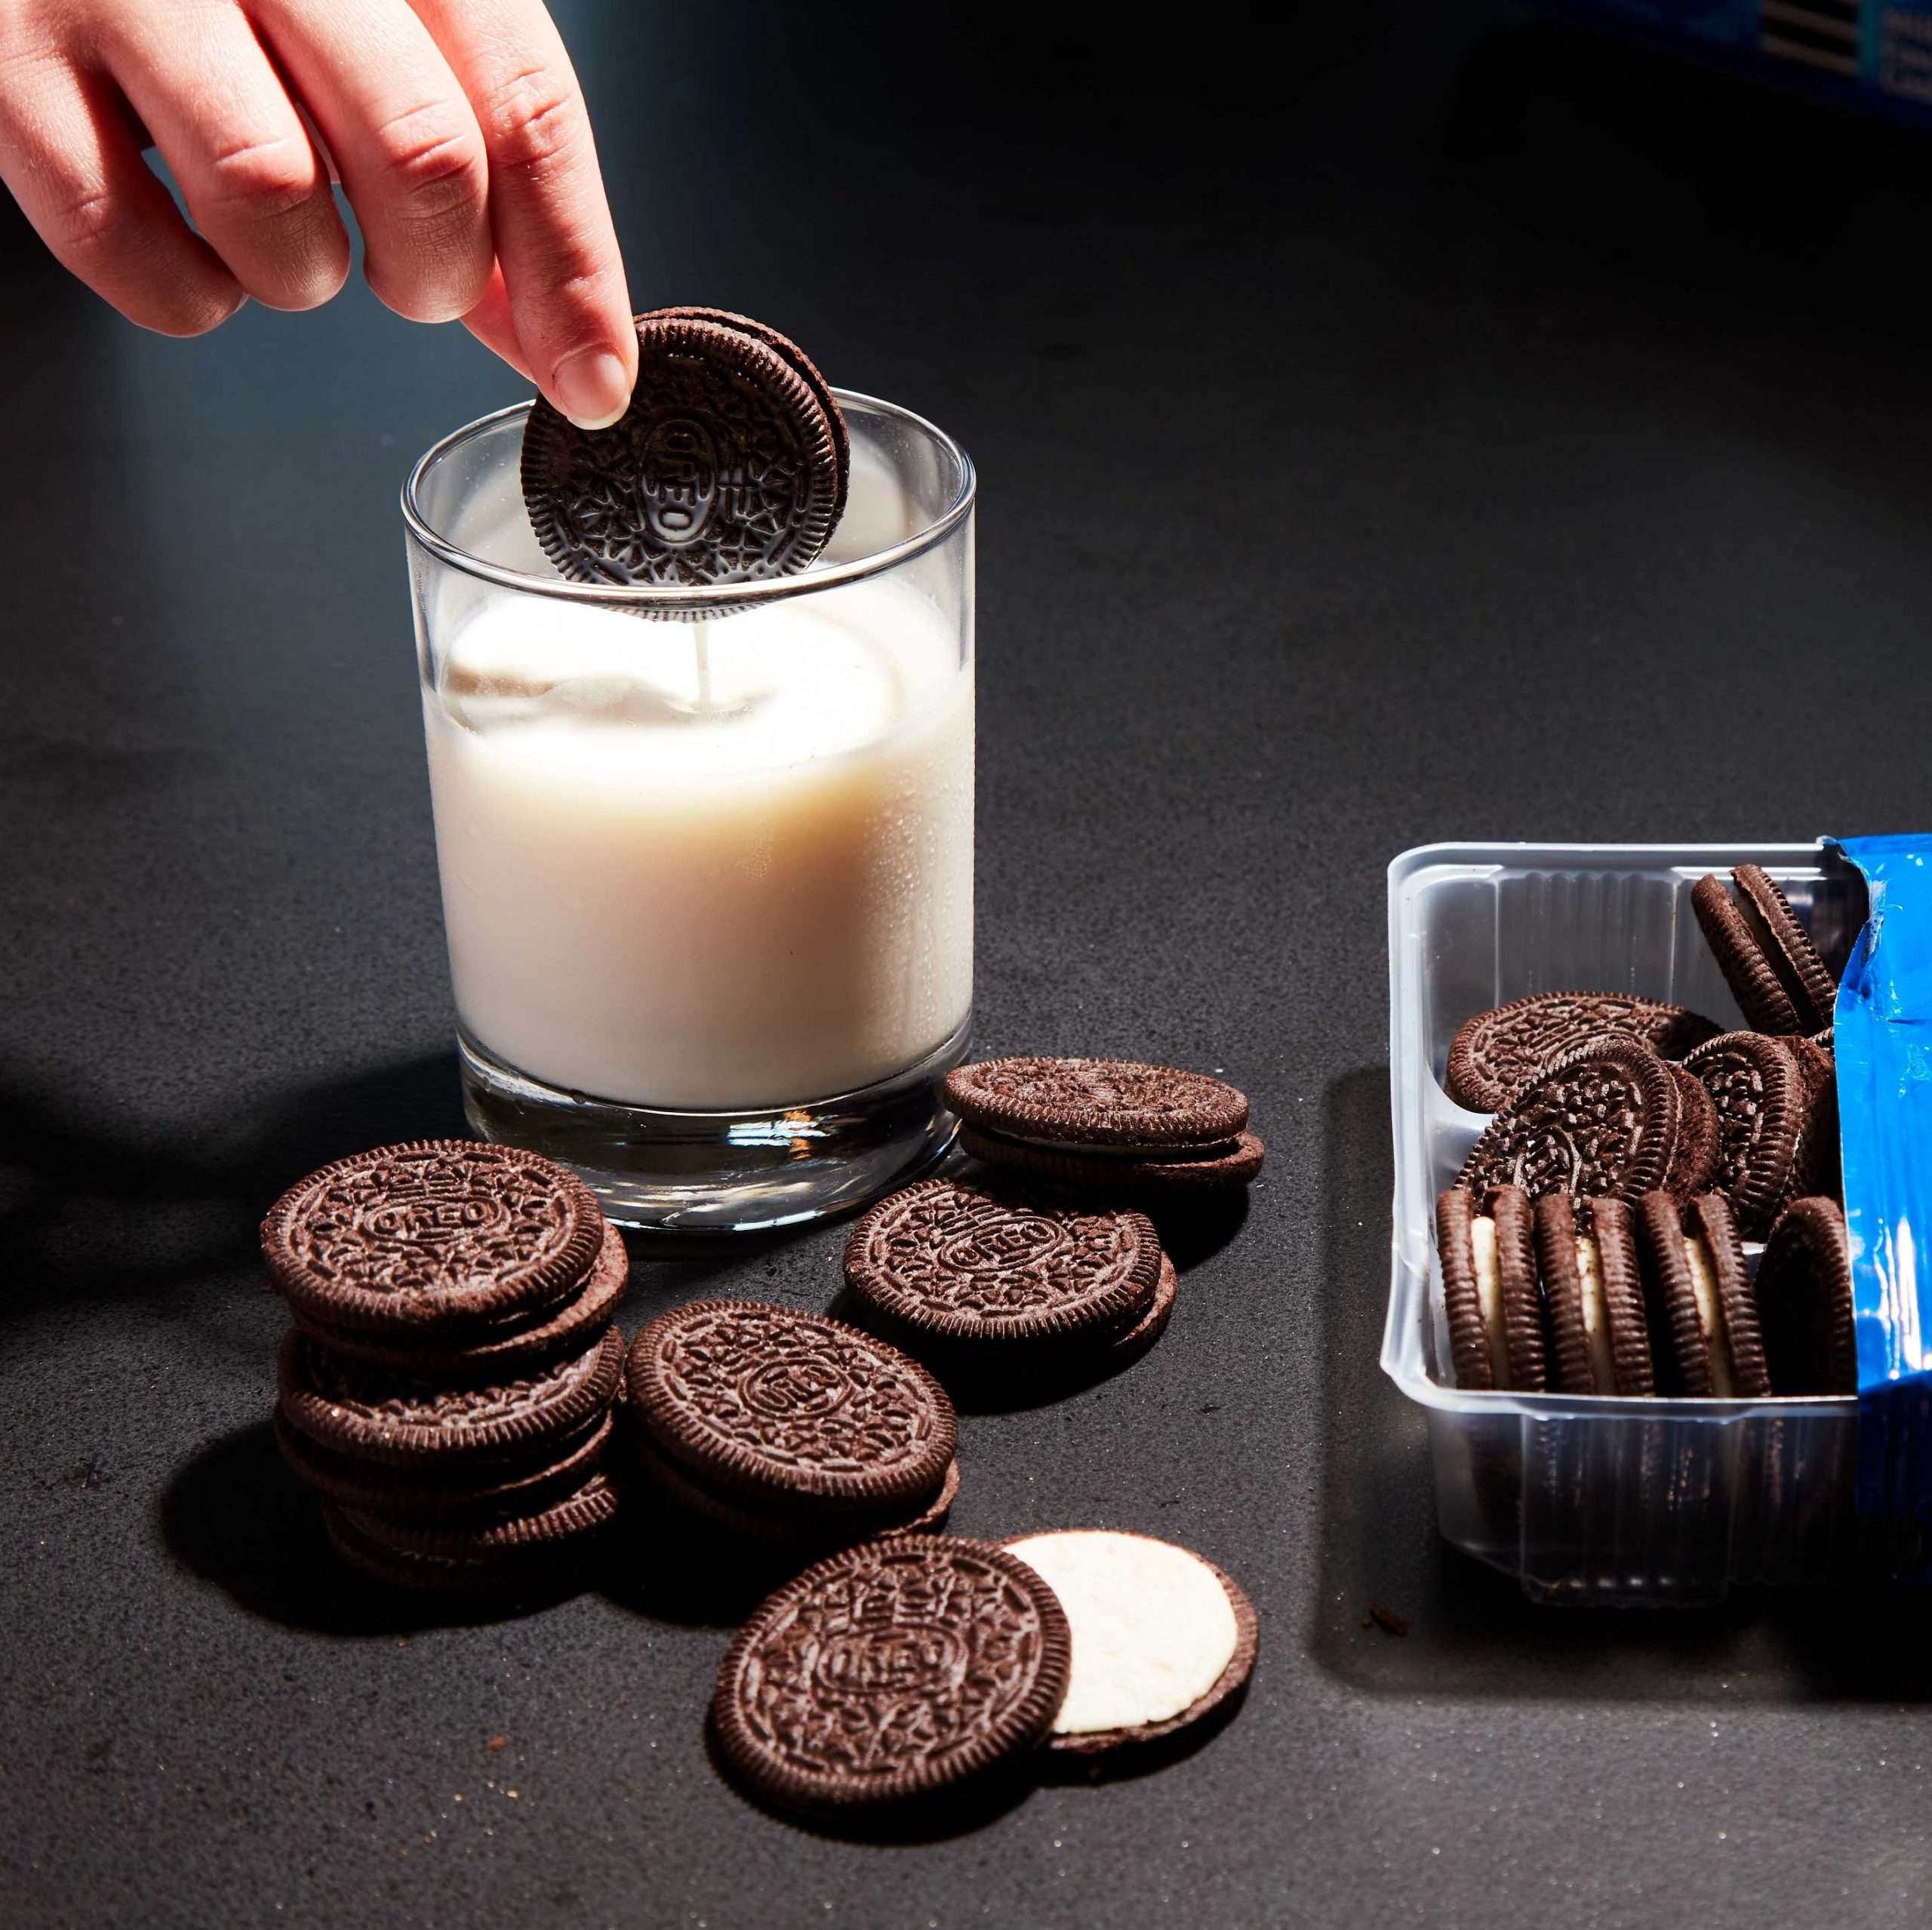 The Absolute Best Way to Eat An Oreo, According to Science | Popular Mechanics